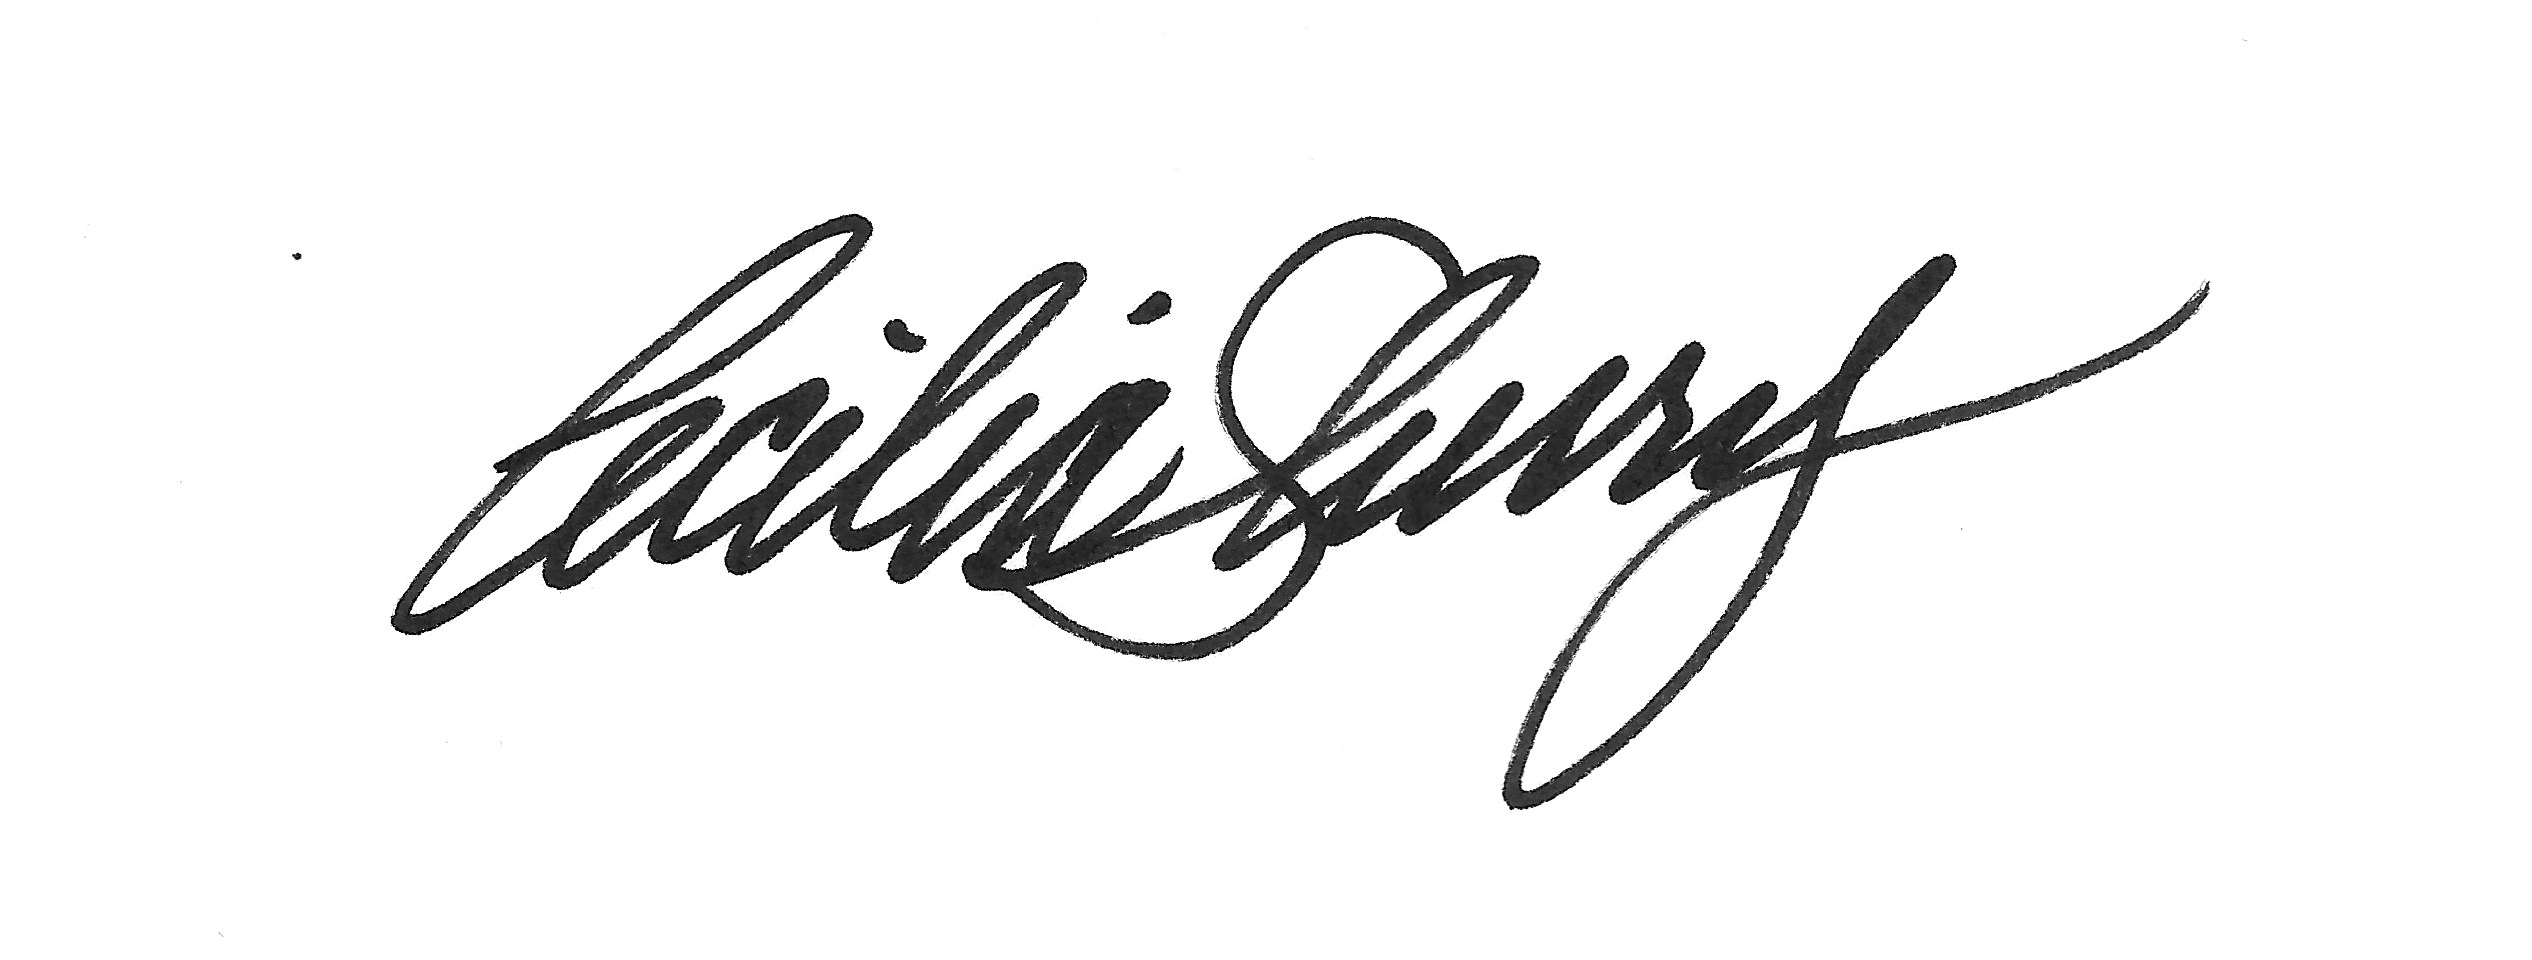 Cecilia Sherry's Signature